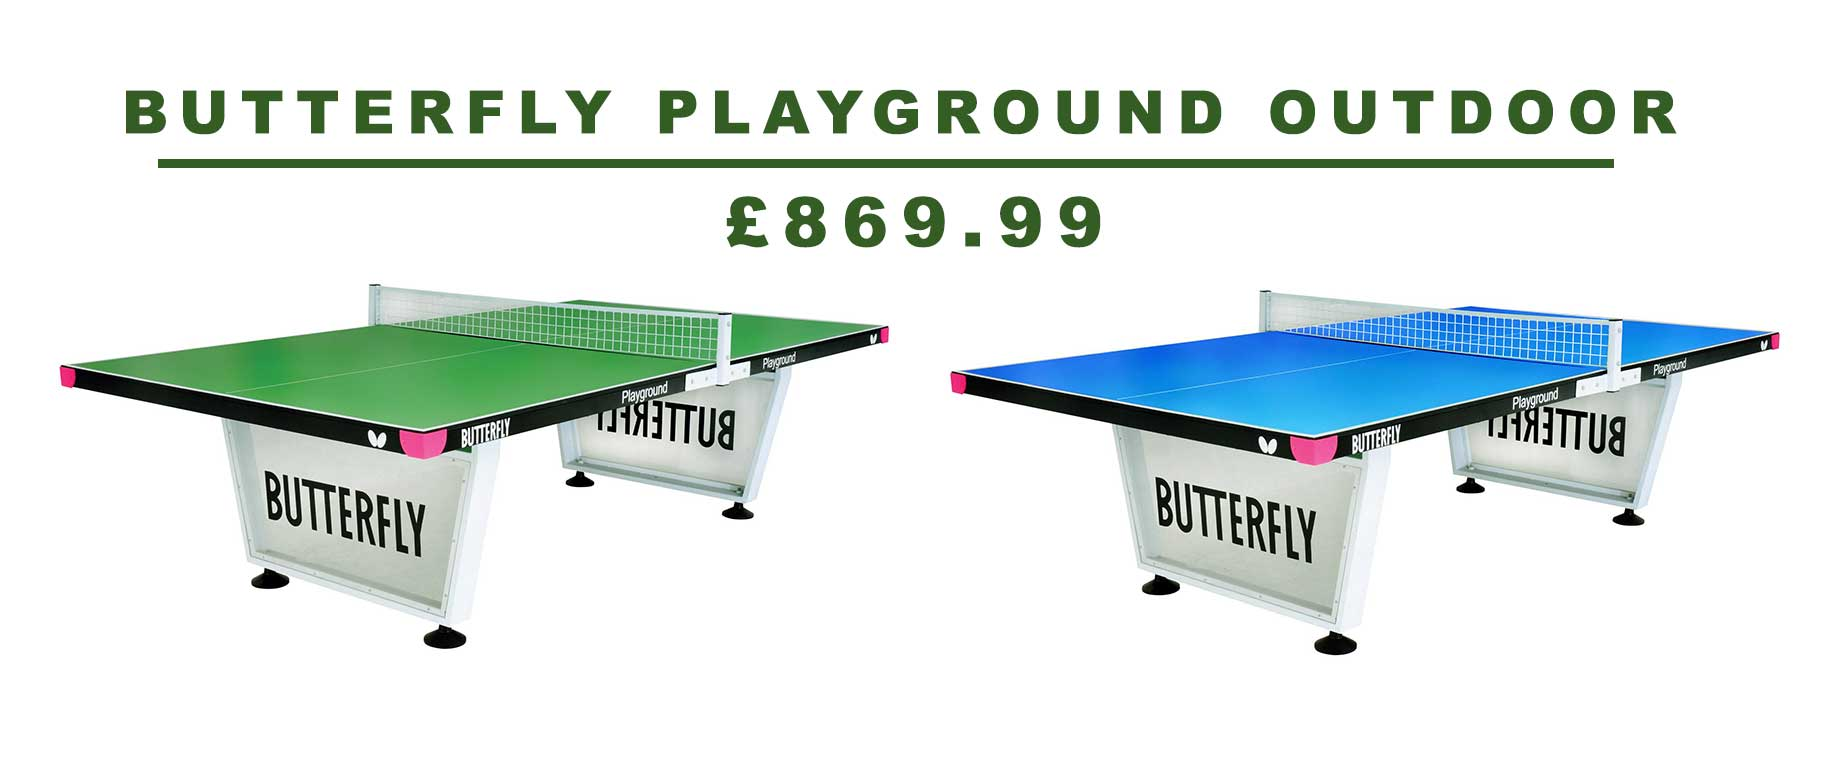 Butterfly Playground Outdoor Table